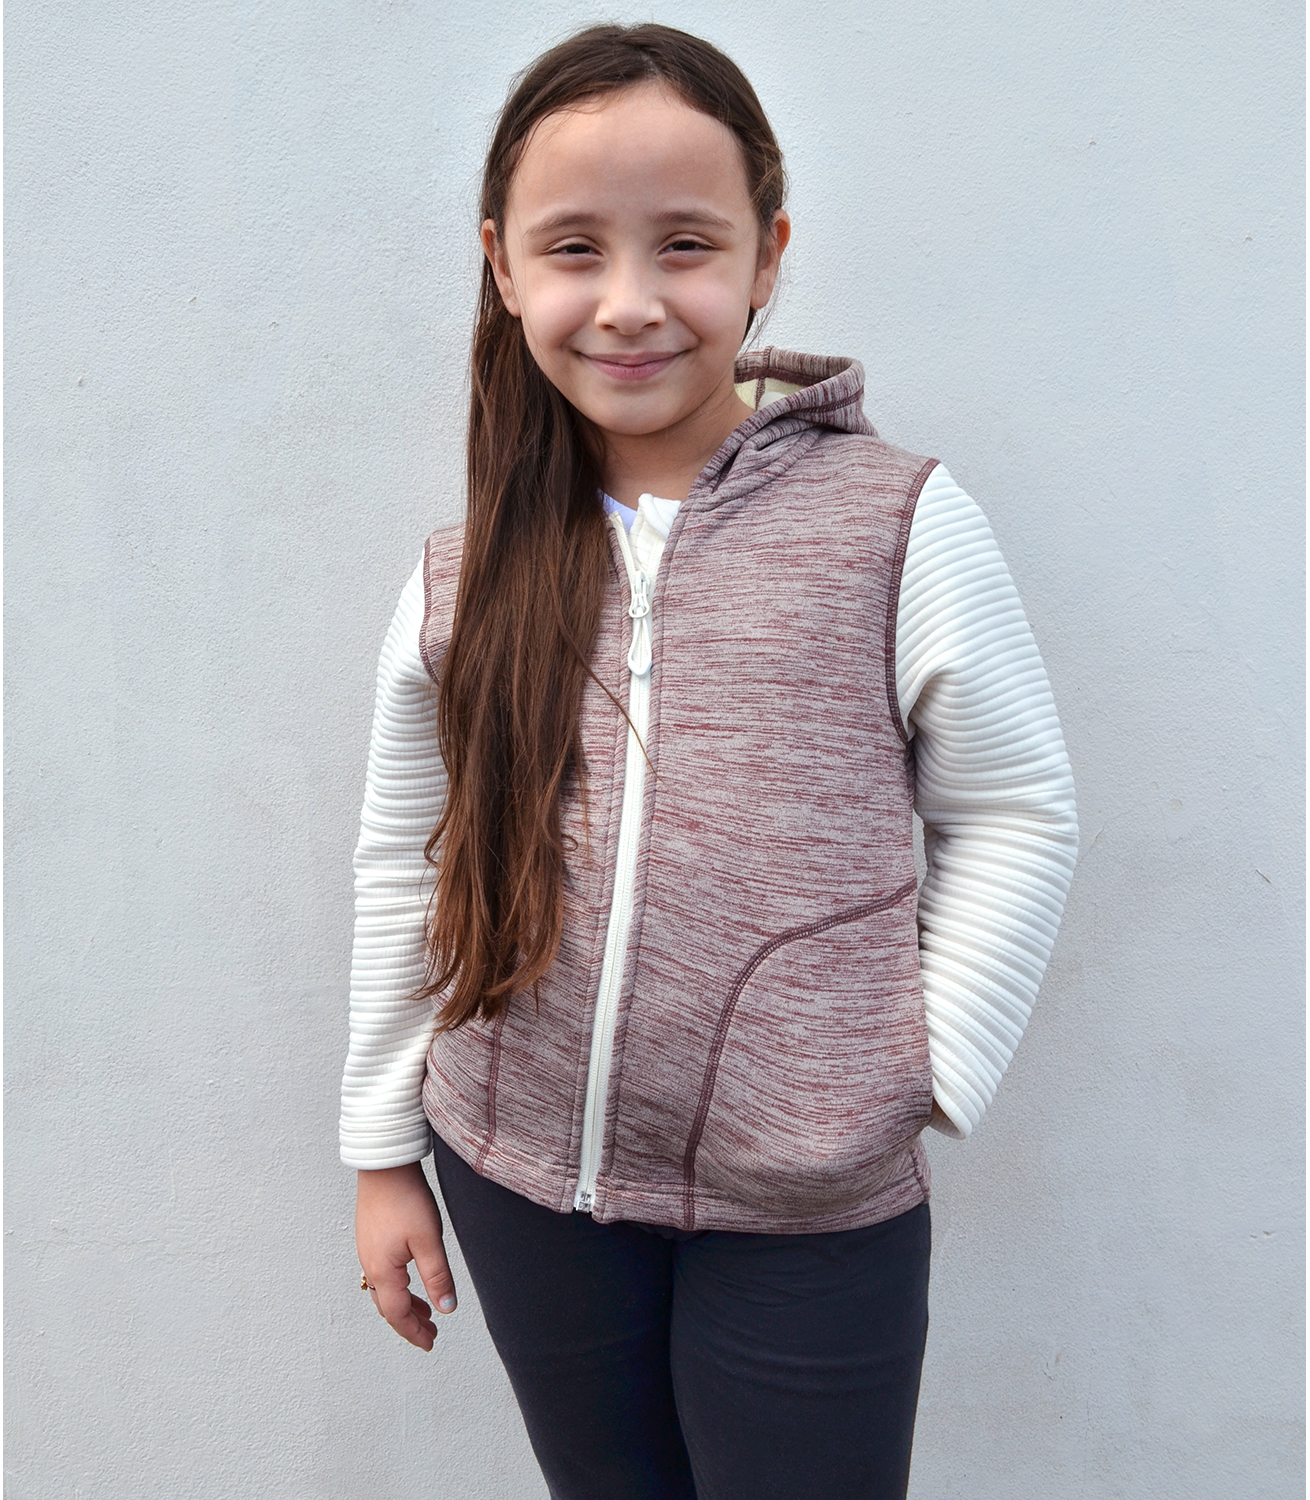 Renegade kids jacket, power stretch, 3d fleece , cream , full zipper, hood, wholesale youth blanks for embroidery wholesale